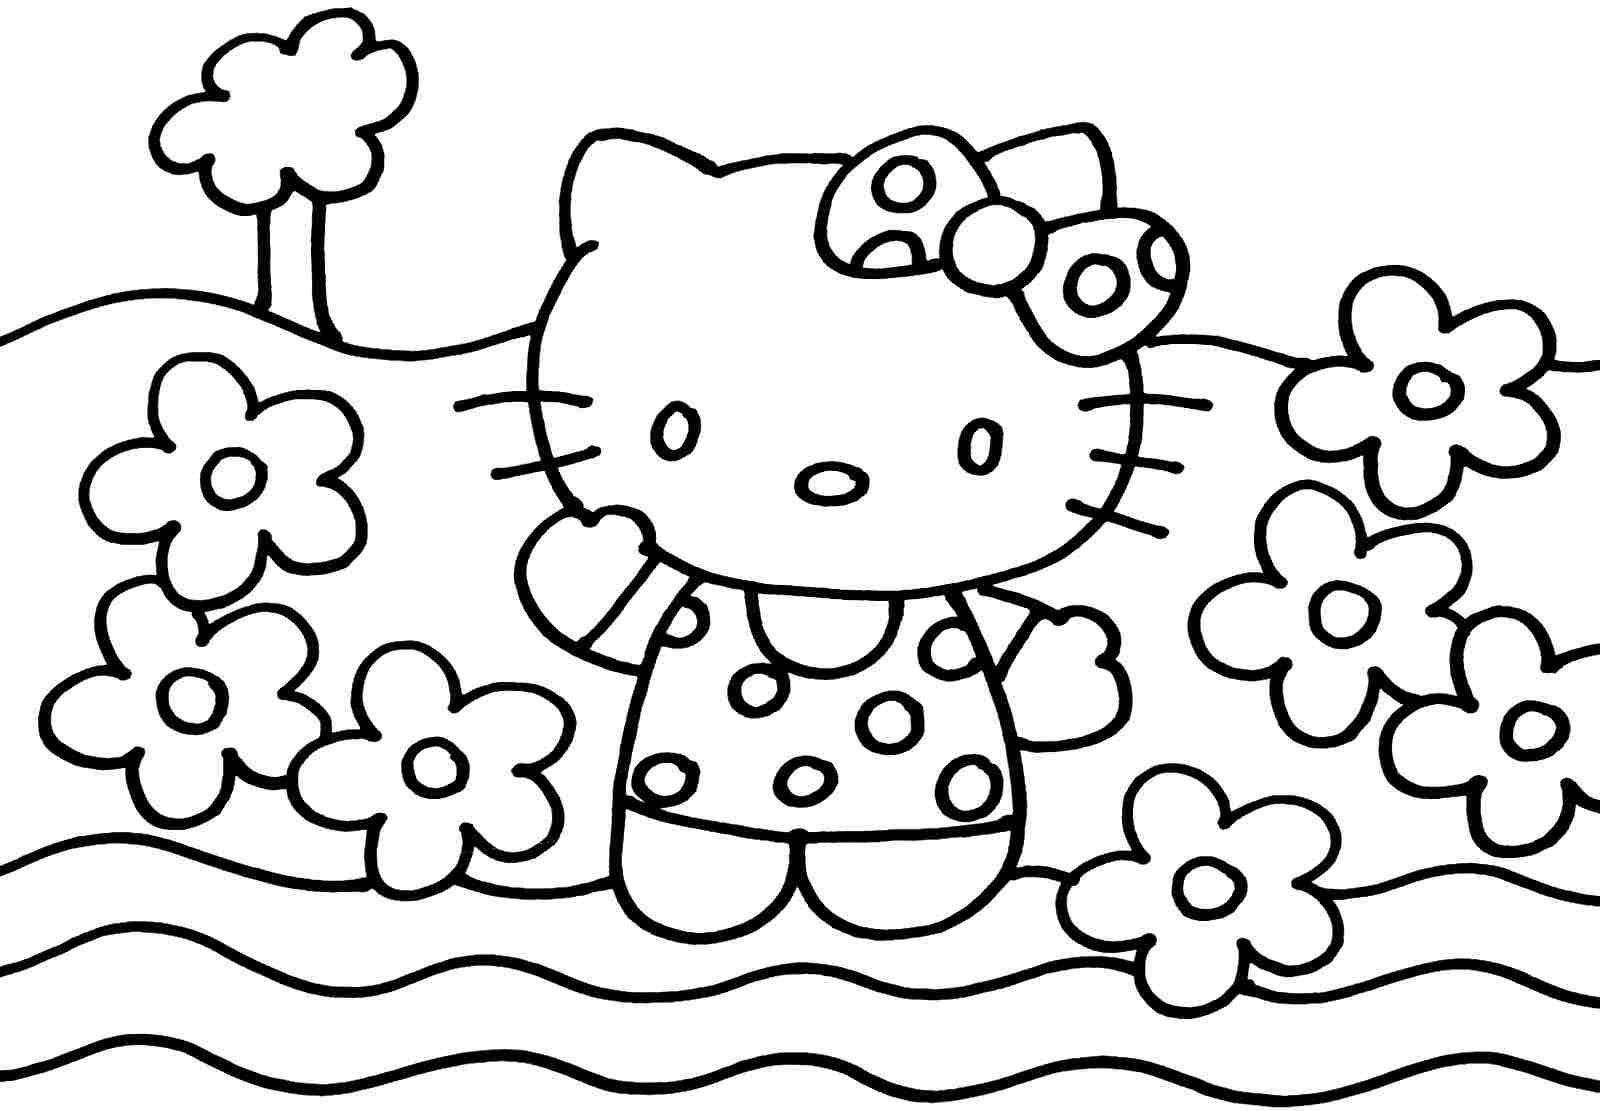 Free hello kitty coloring pages to print - Hello Kitty Coloring Page Free Printable Coloring Pages